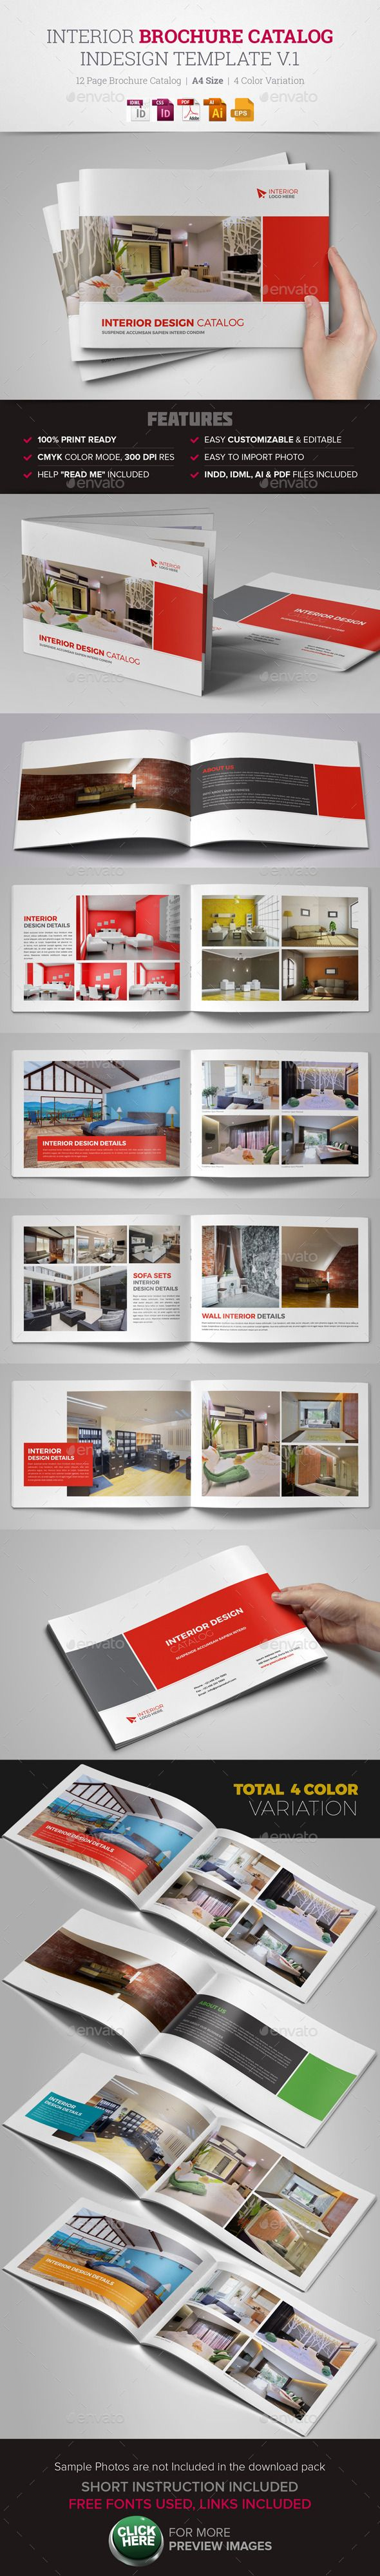 Interior Brochure Catalog Design